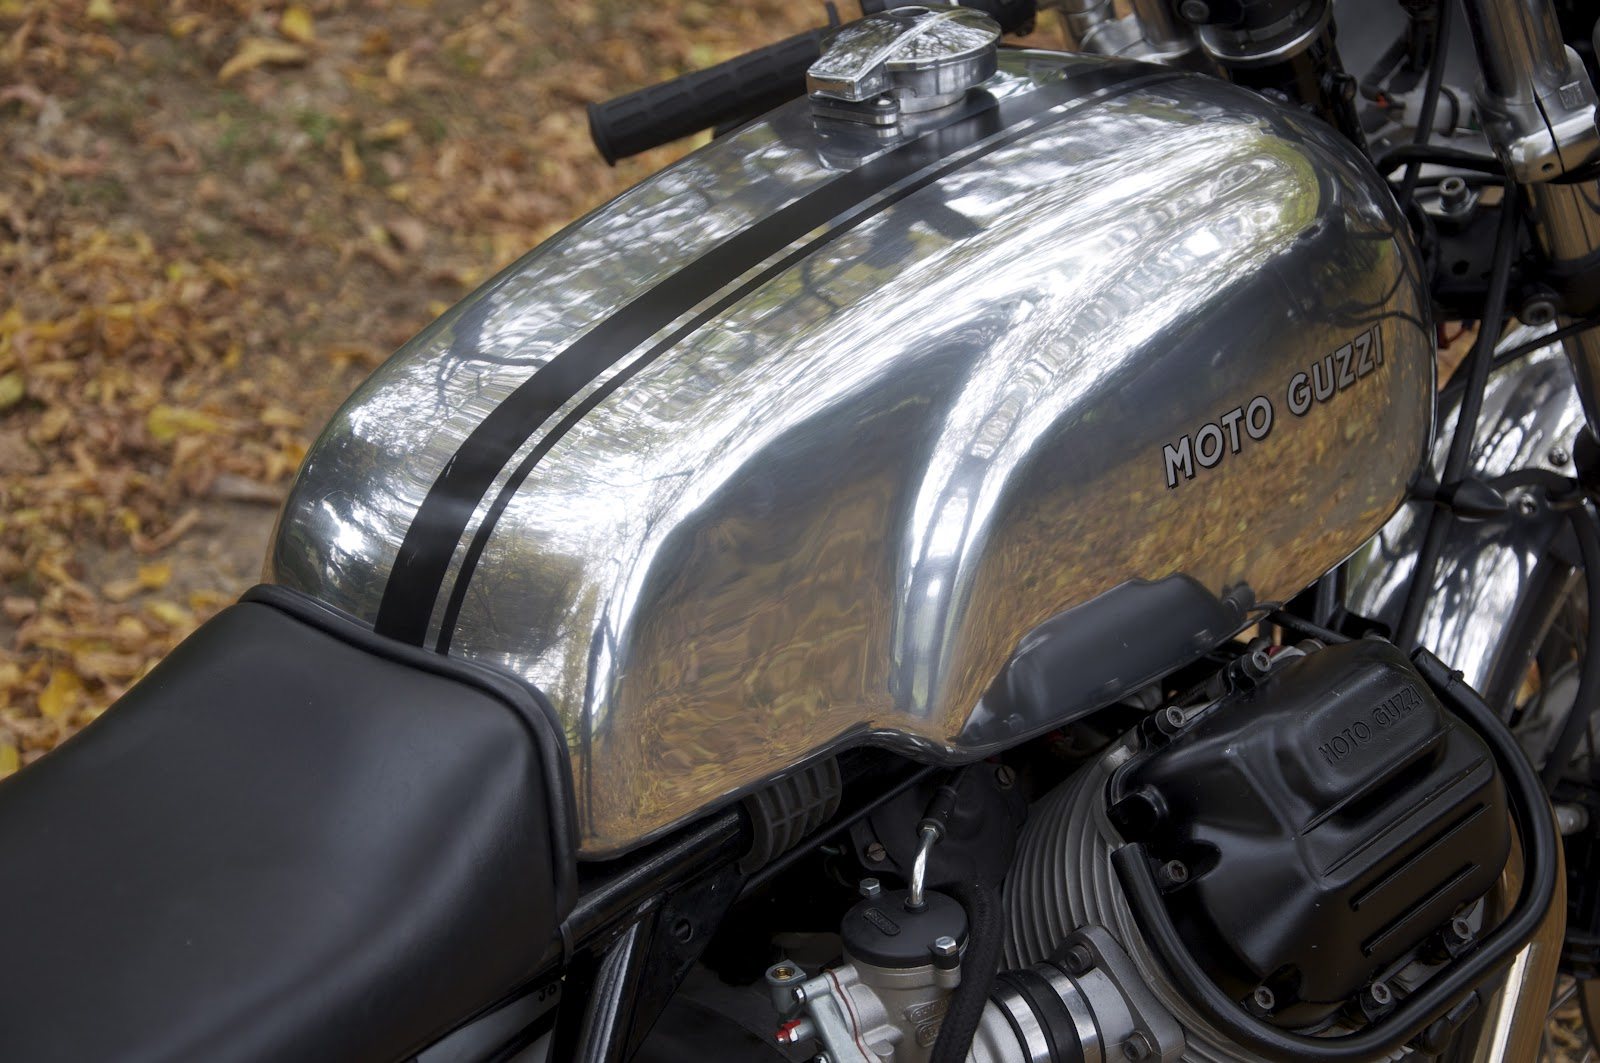 A heated motorcycle is tough to handle